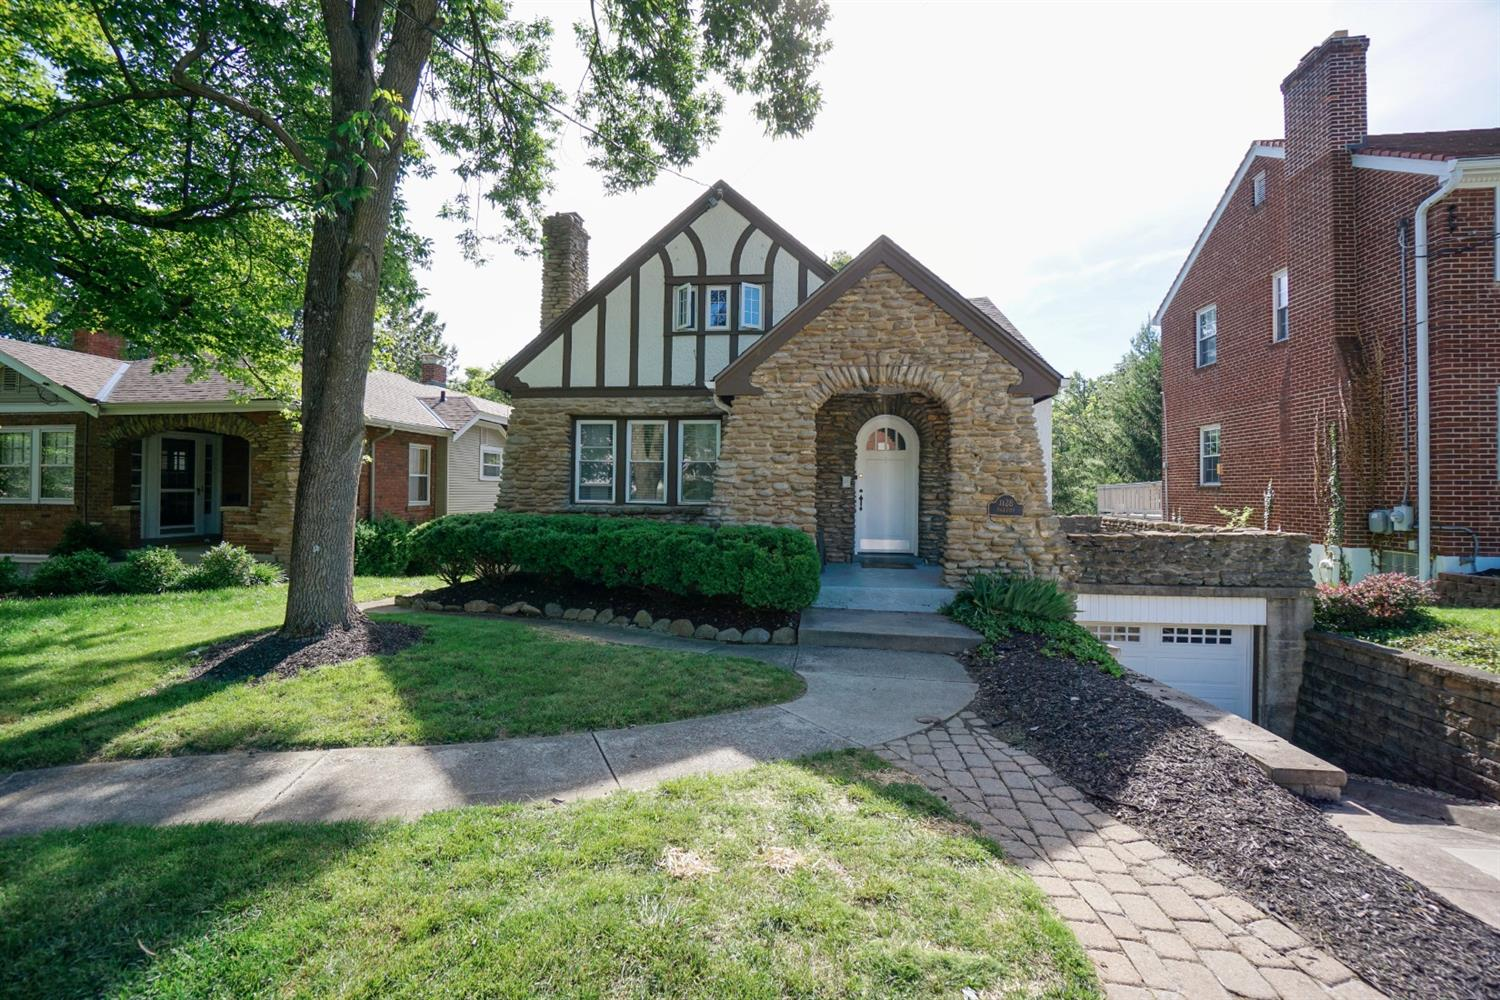 Property for sale at 1128 Paxton Avenue, Cincinnati,  Ohio 45208